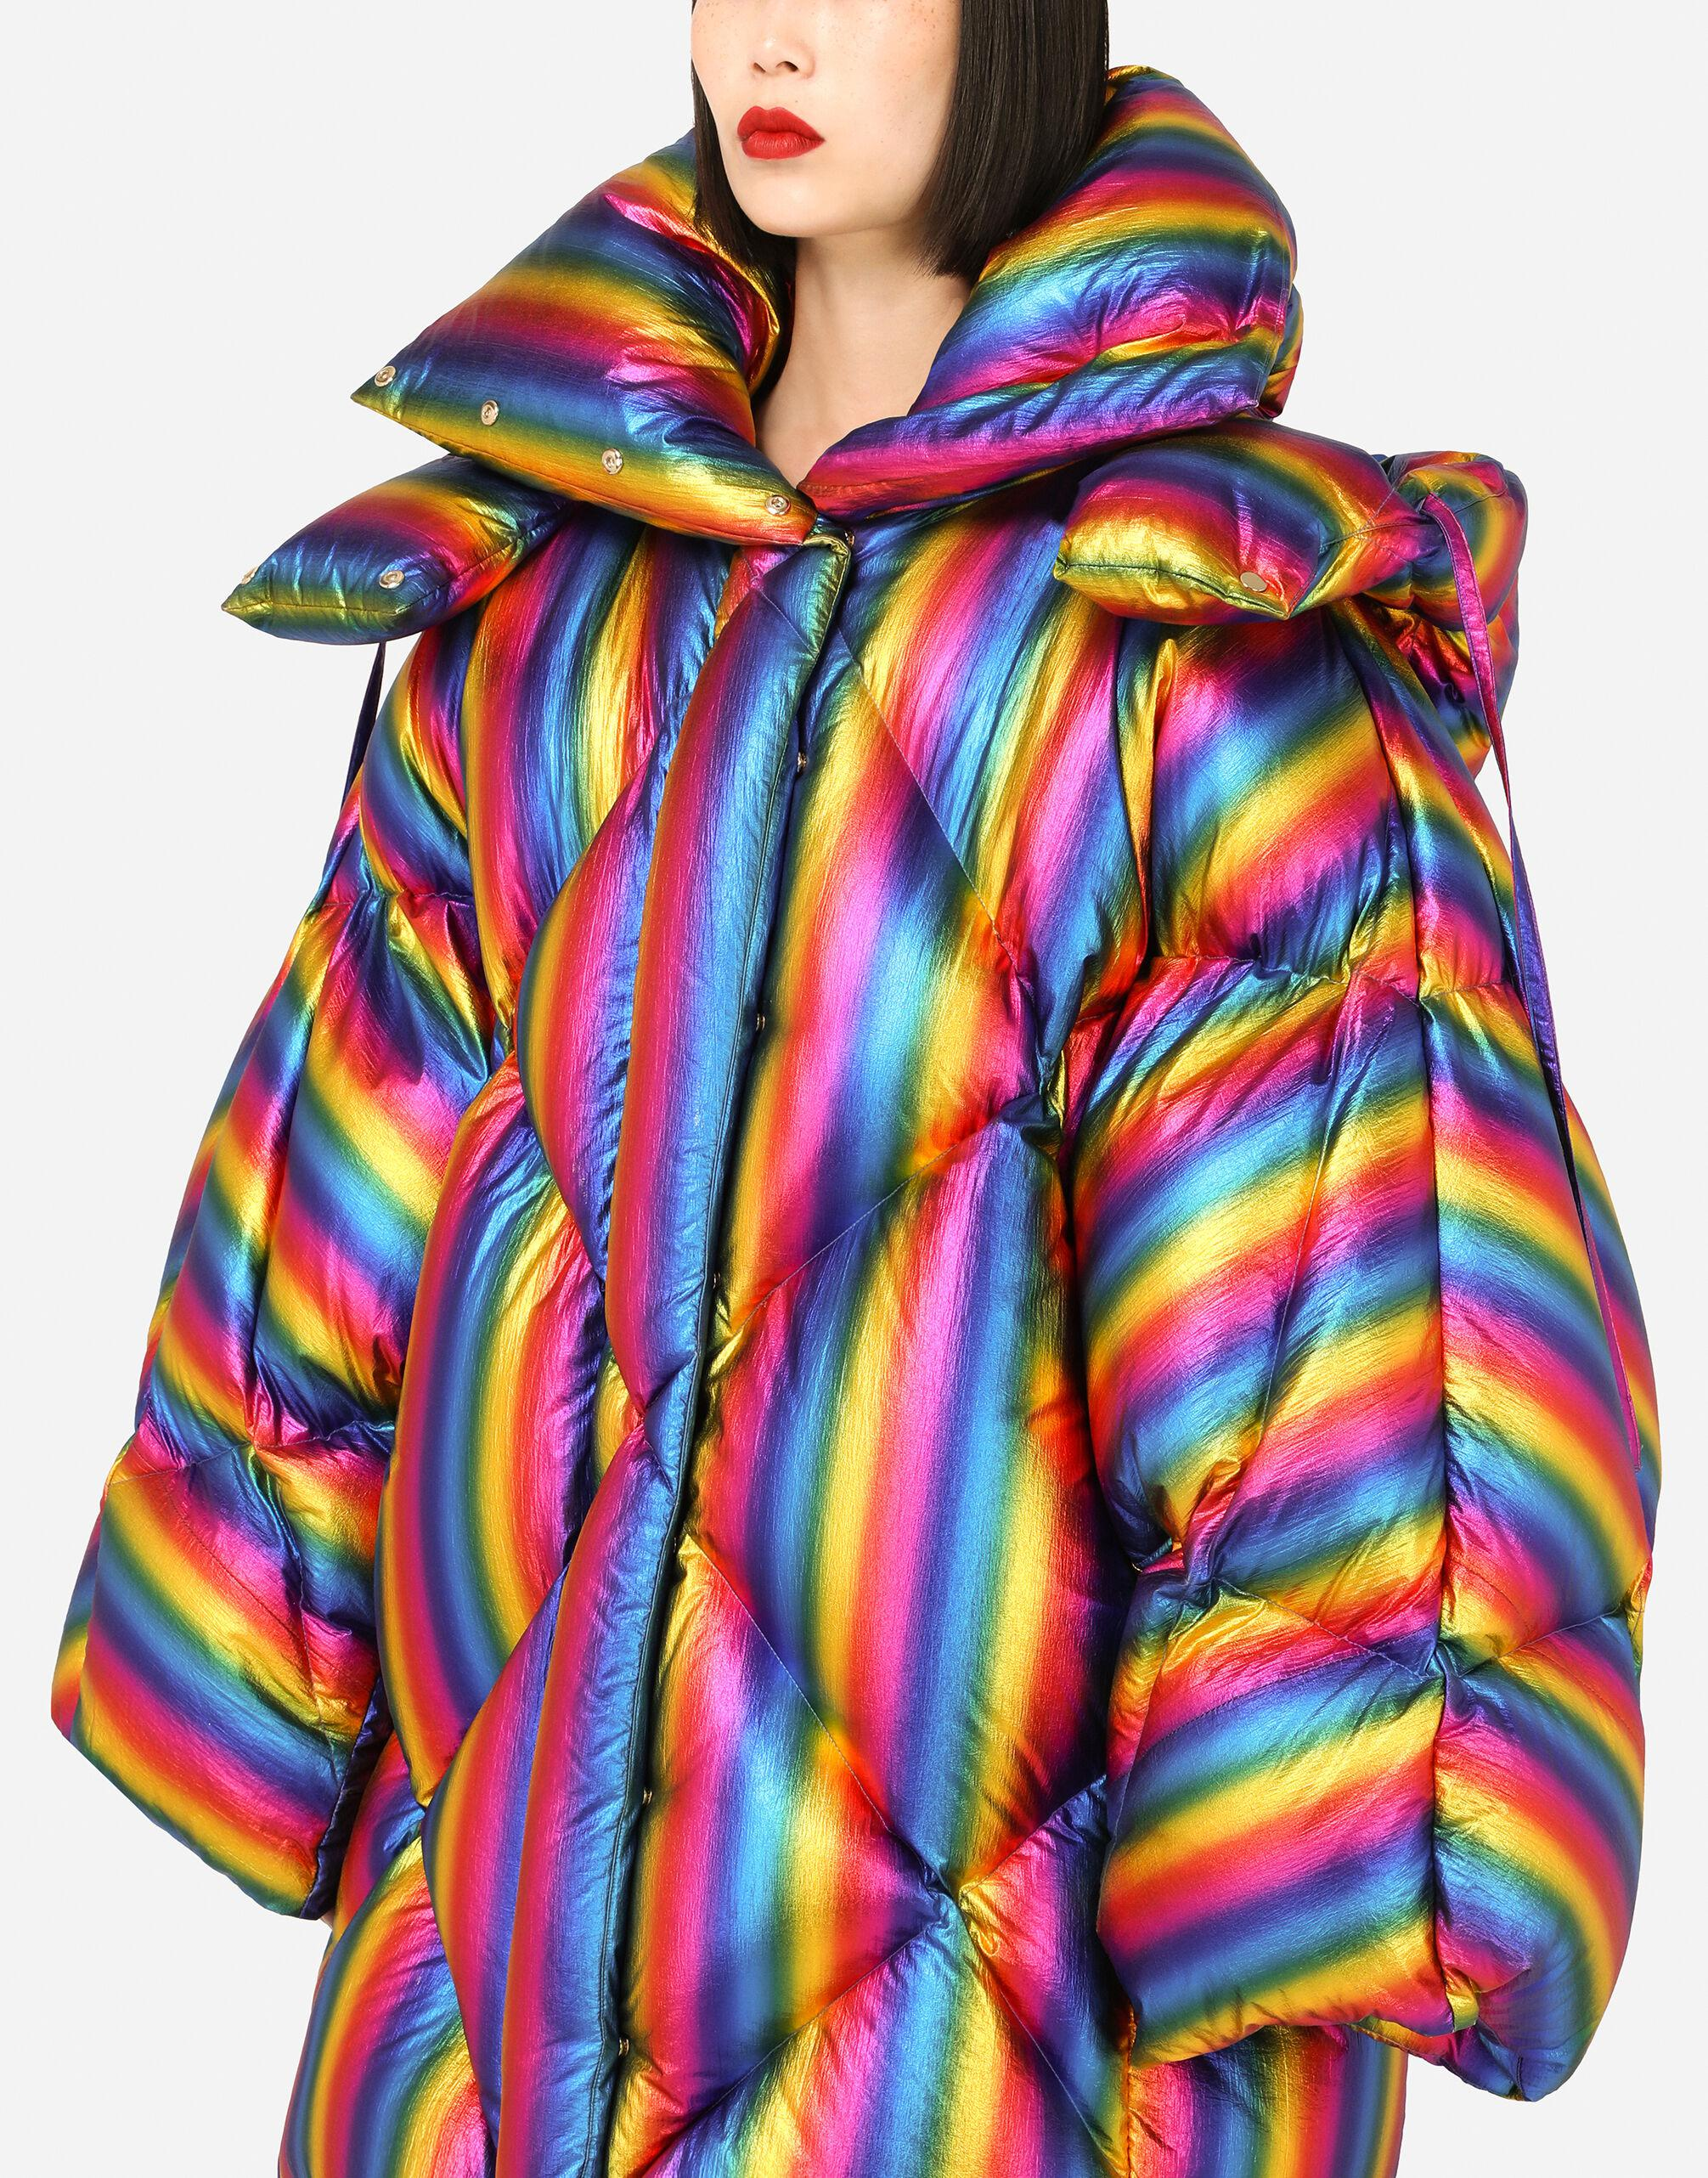 Foiled nylon down jacket with multi-colored stripes 2